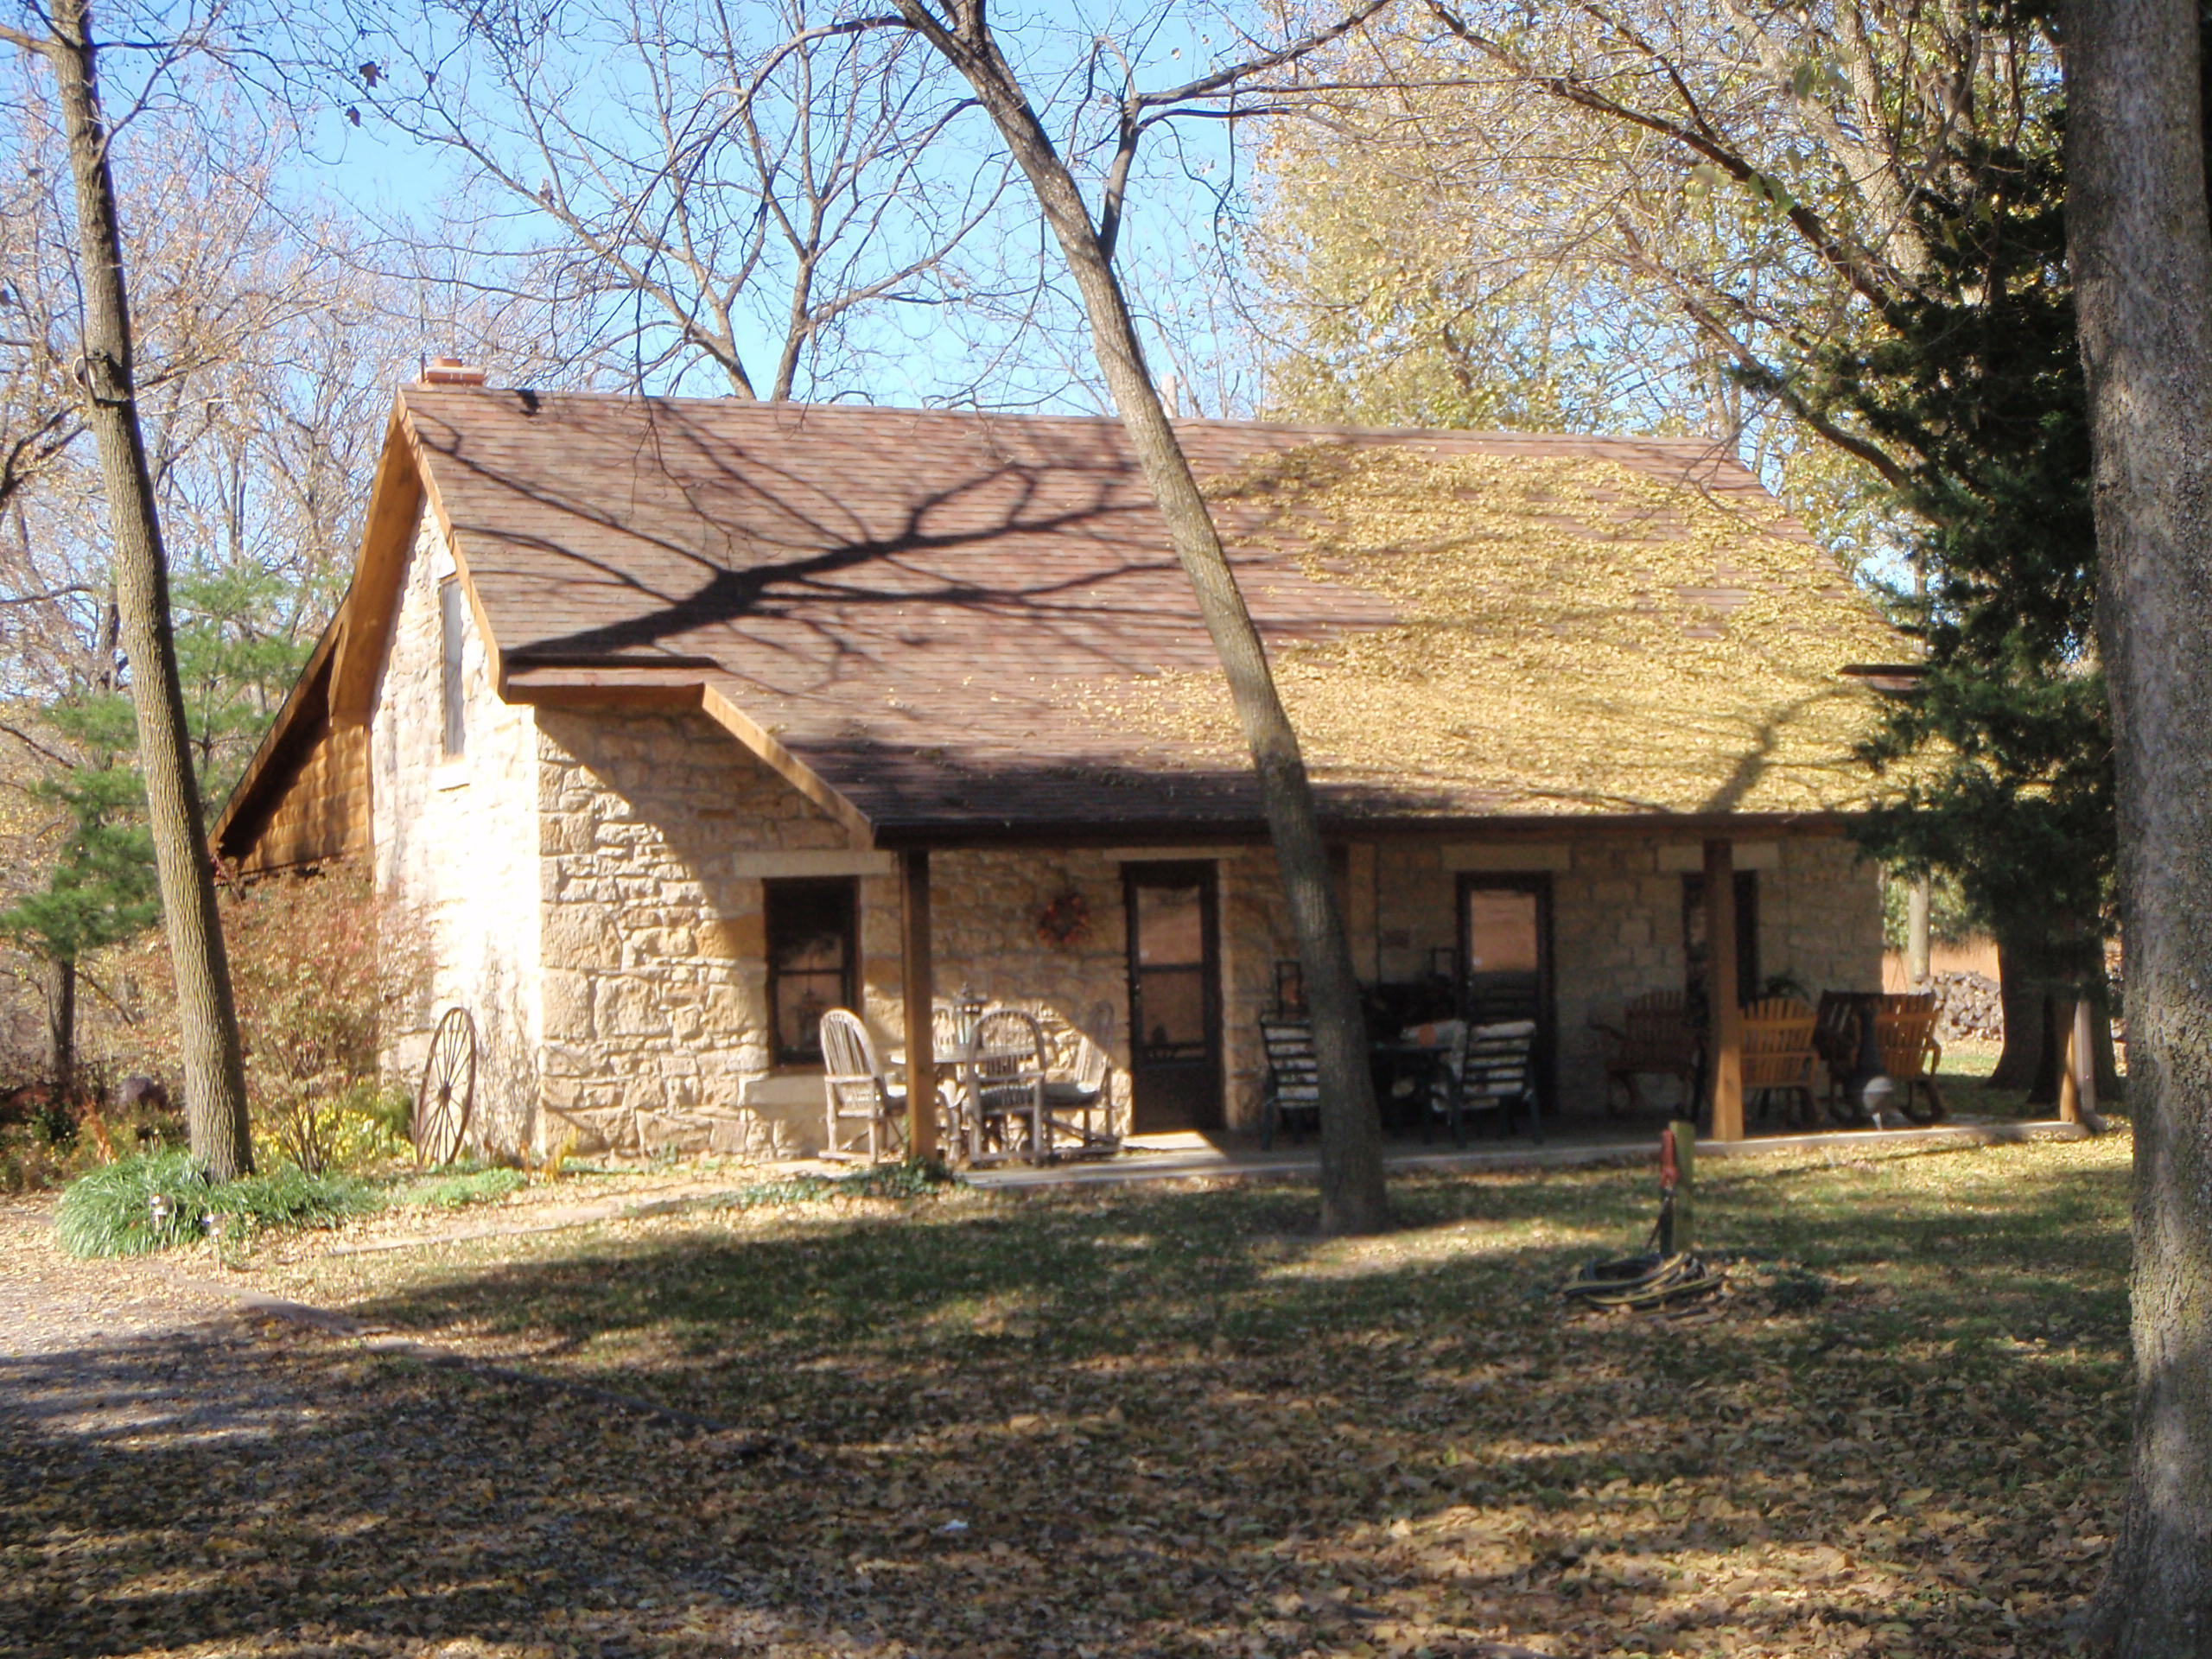 Historic Mission Creek Lodge, at Ravenwood since the Civil War era